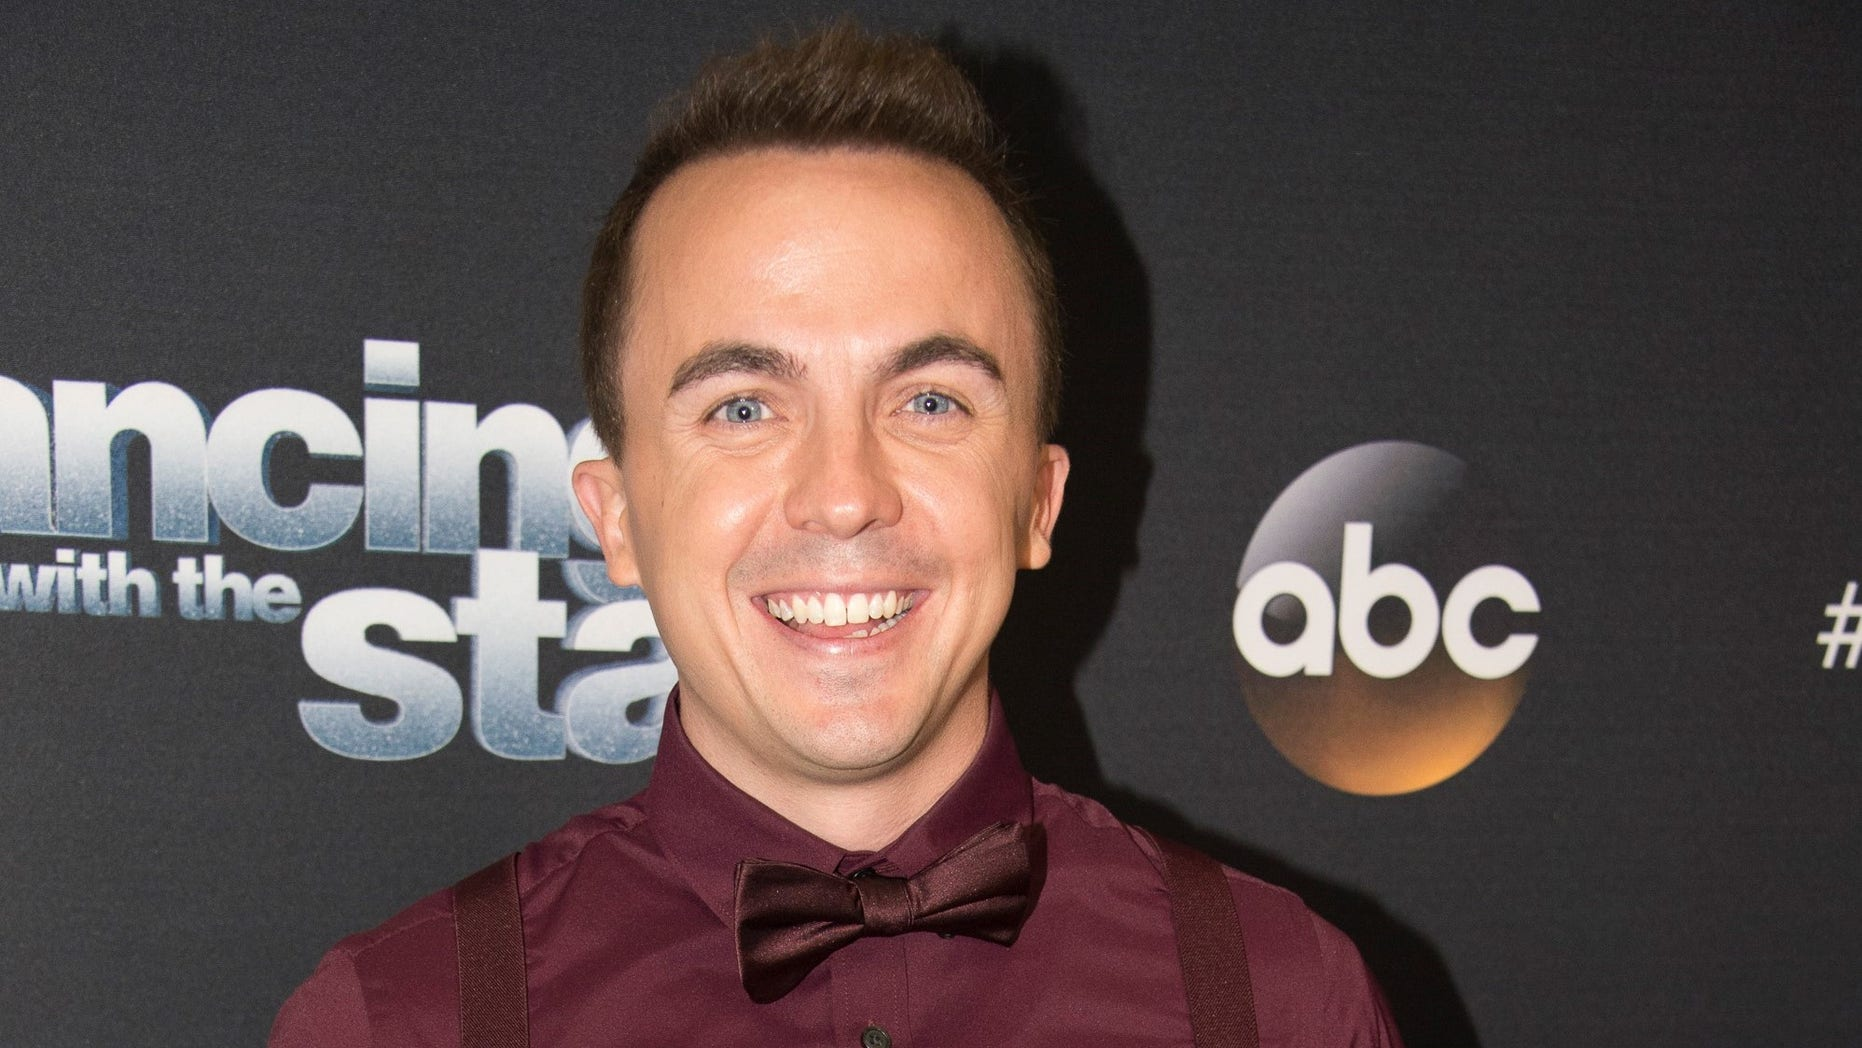 Frankie Muniz Engaged Again - Who's the Girl?